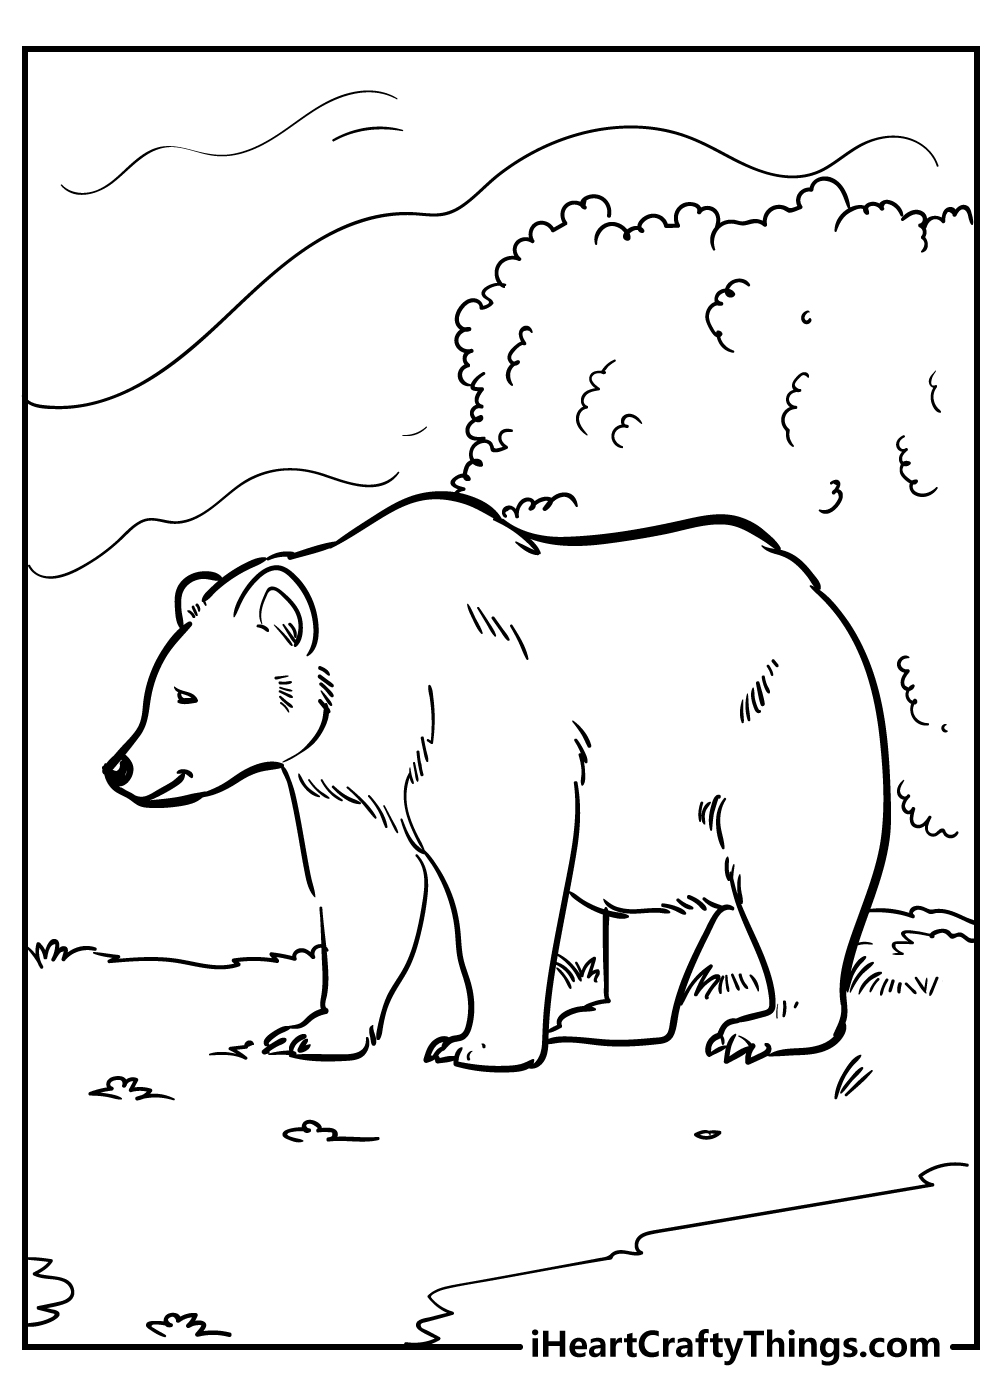 Bear Coloring Pages Updated 2021